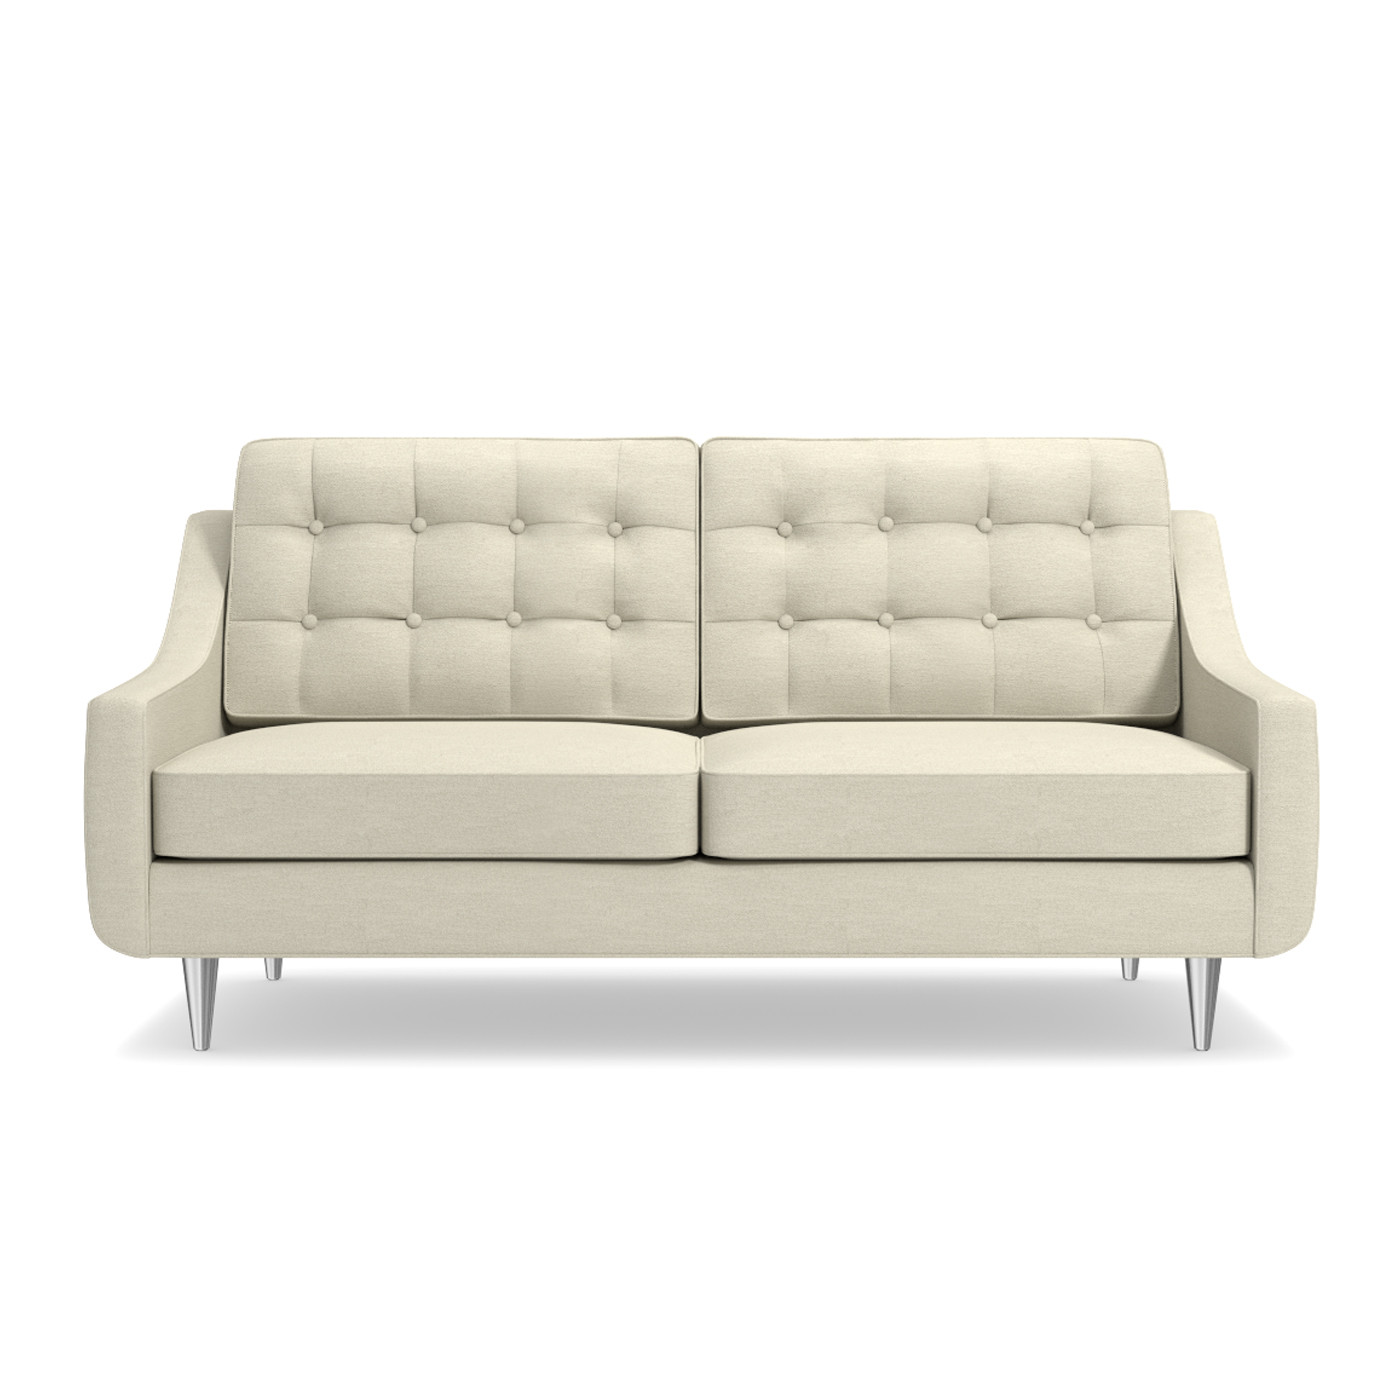 Great Apartment Sofa 53 With Additional Contemporary Sofa Inspiration with Apartment Sofa